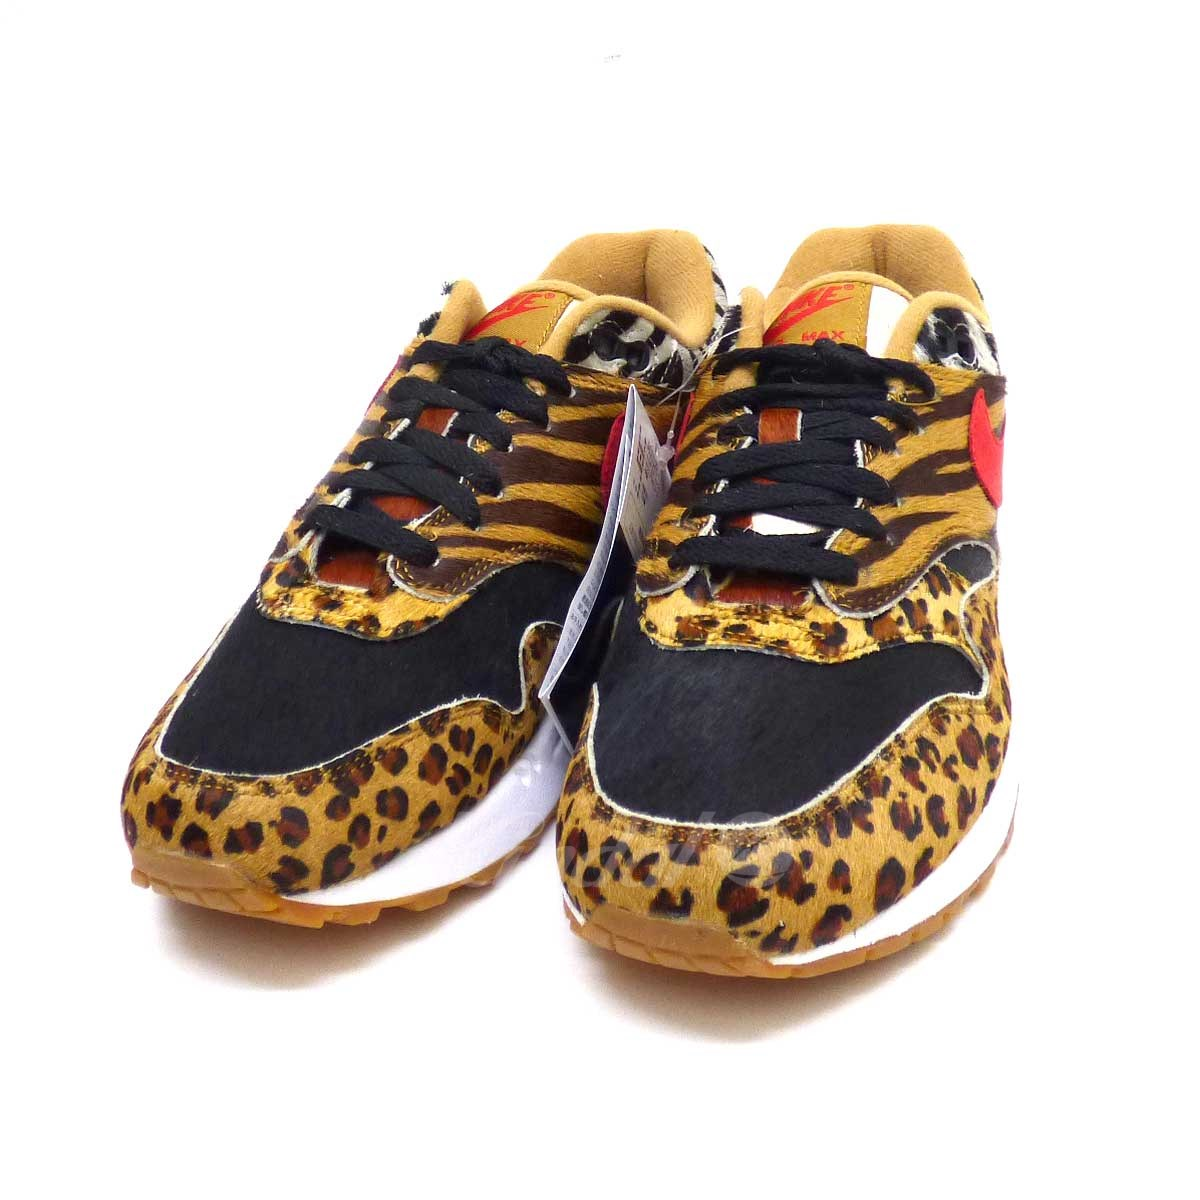 【中古】NIKE AIR MAX 1 DLX  2018S/S ATMOS ANIMAL PACK スニーカー 【送料無料】 【095254】 【KT1544】 【返品不可】